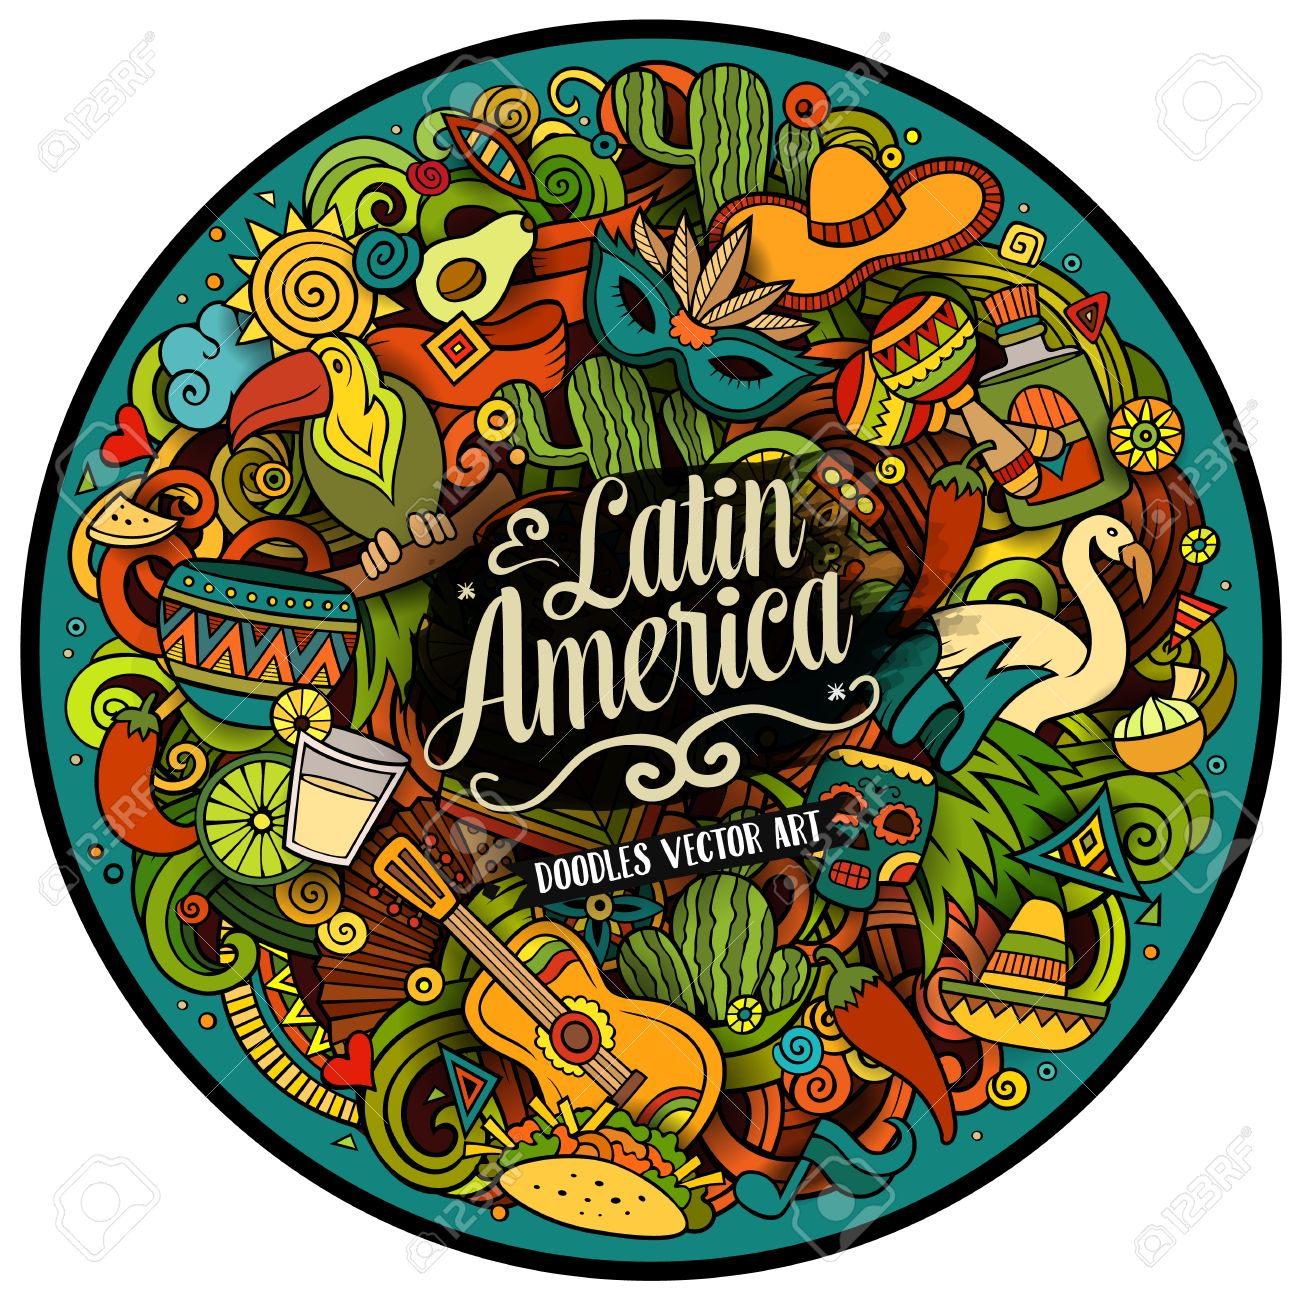 Latin America. Cartoon vector hand drawn Doodle illustration. Colorful detailed round design background with objects and symbols. All objects are separated - 57559125